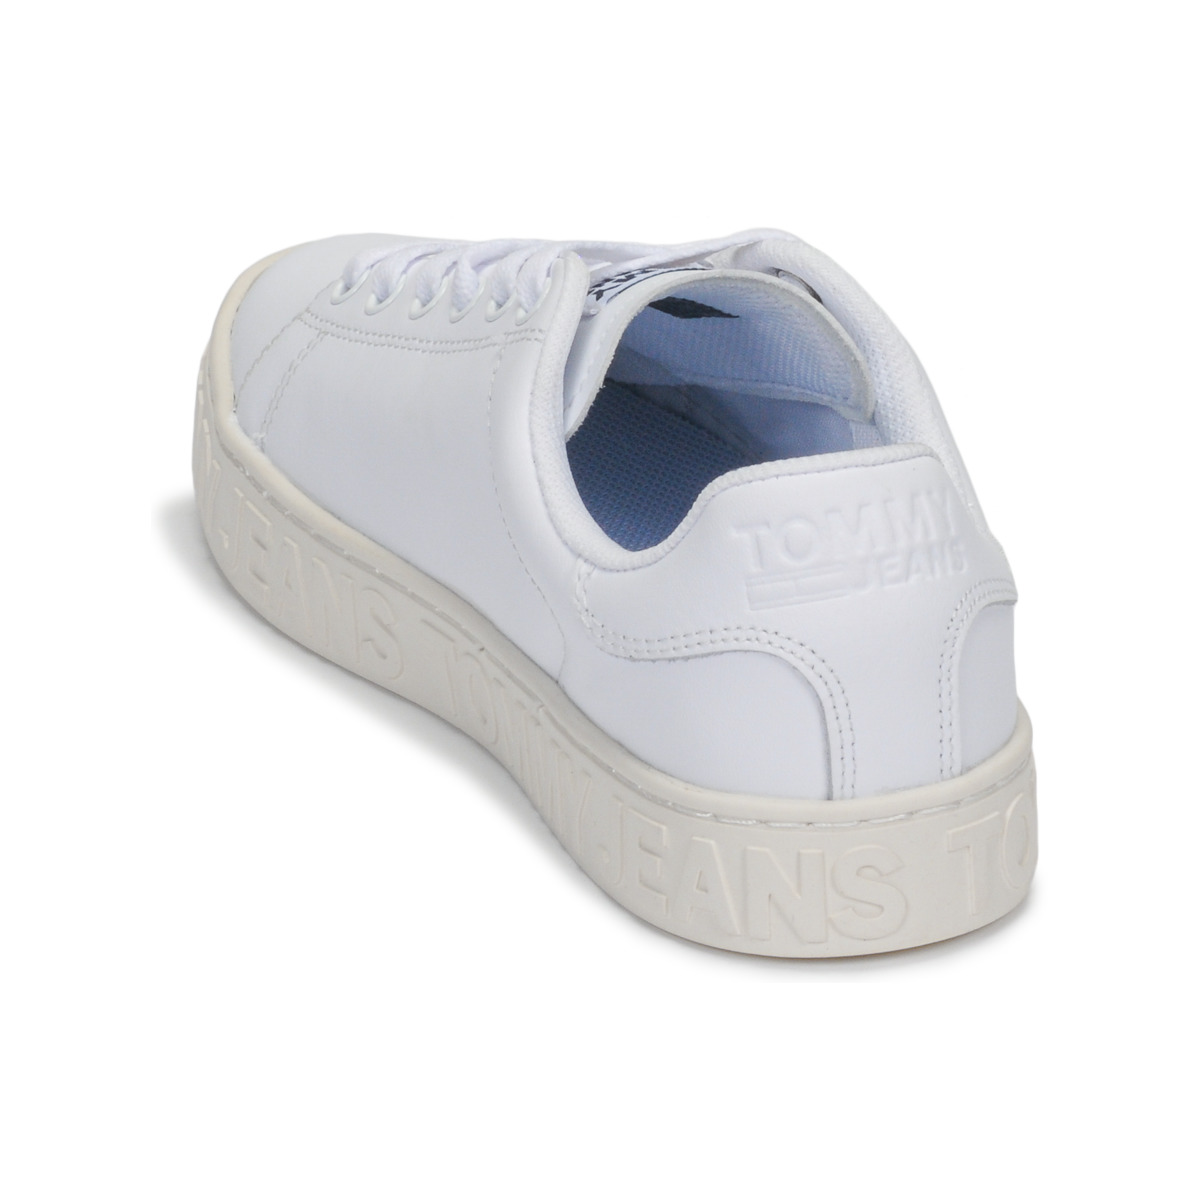 Tommy Jeans COOL TOMMY JEANS SNEAKER Bianco 16366532 Consegna Gratuita OutletScarpeOnline.it